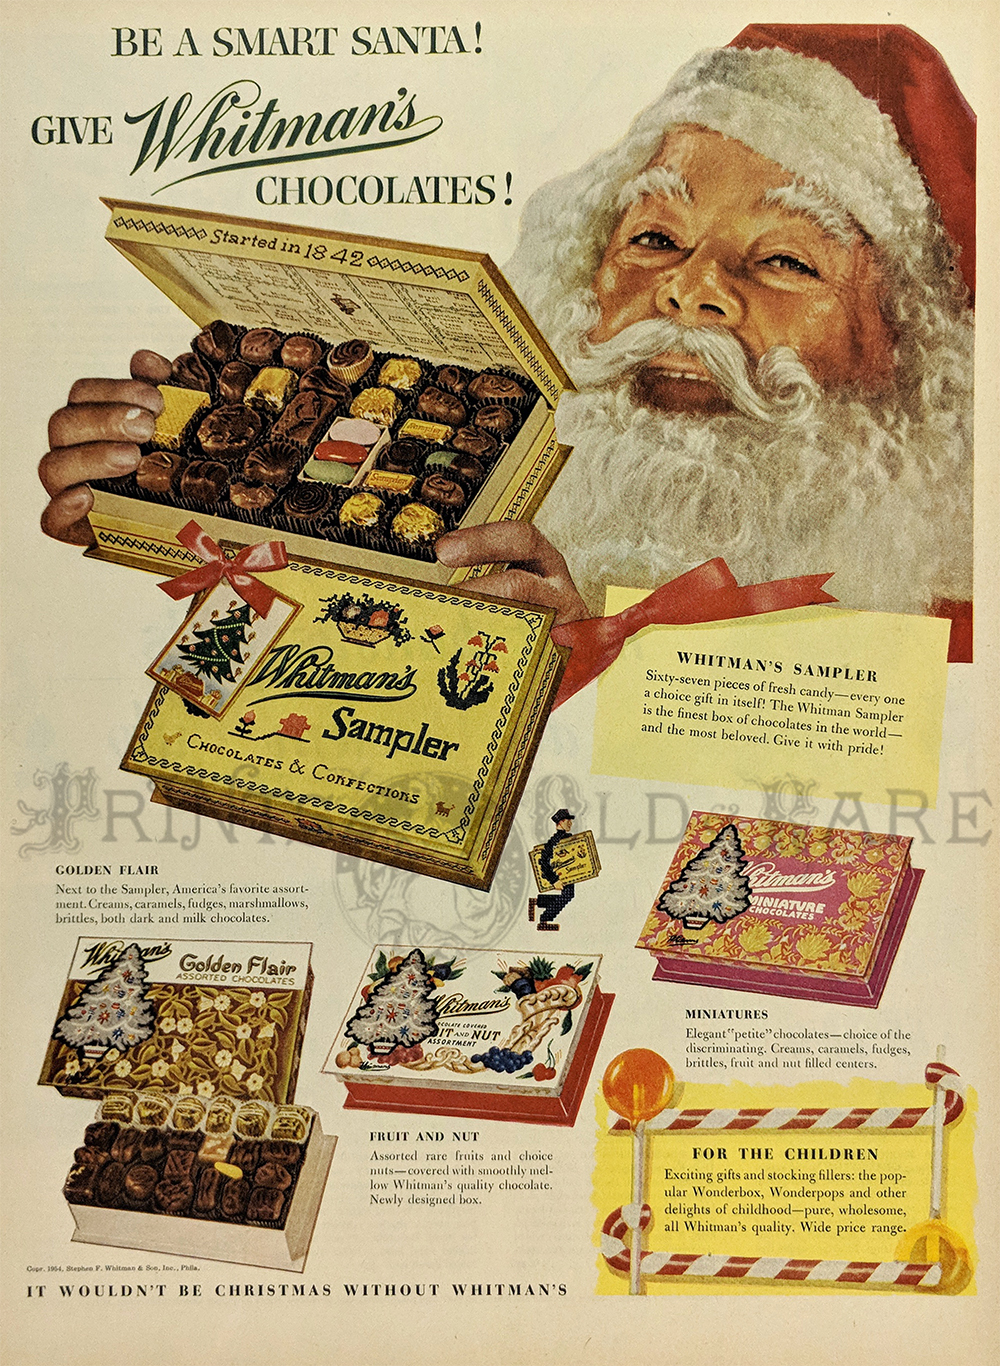 1954 Color Whitmans Chocolates Advertisement Featuring Santa Claus Holding An Open Box Of A Delicious Whitman Sampler Other Chocolate Varieties Are Shown